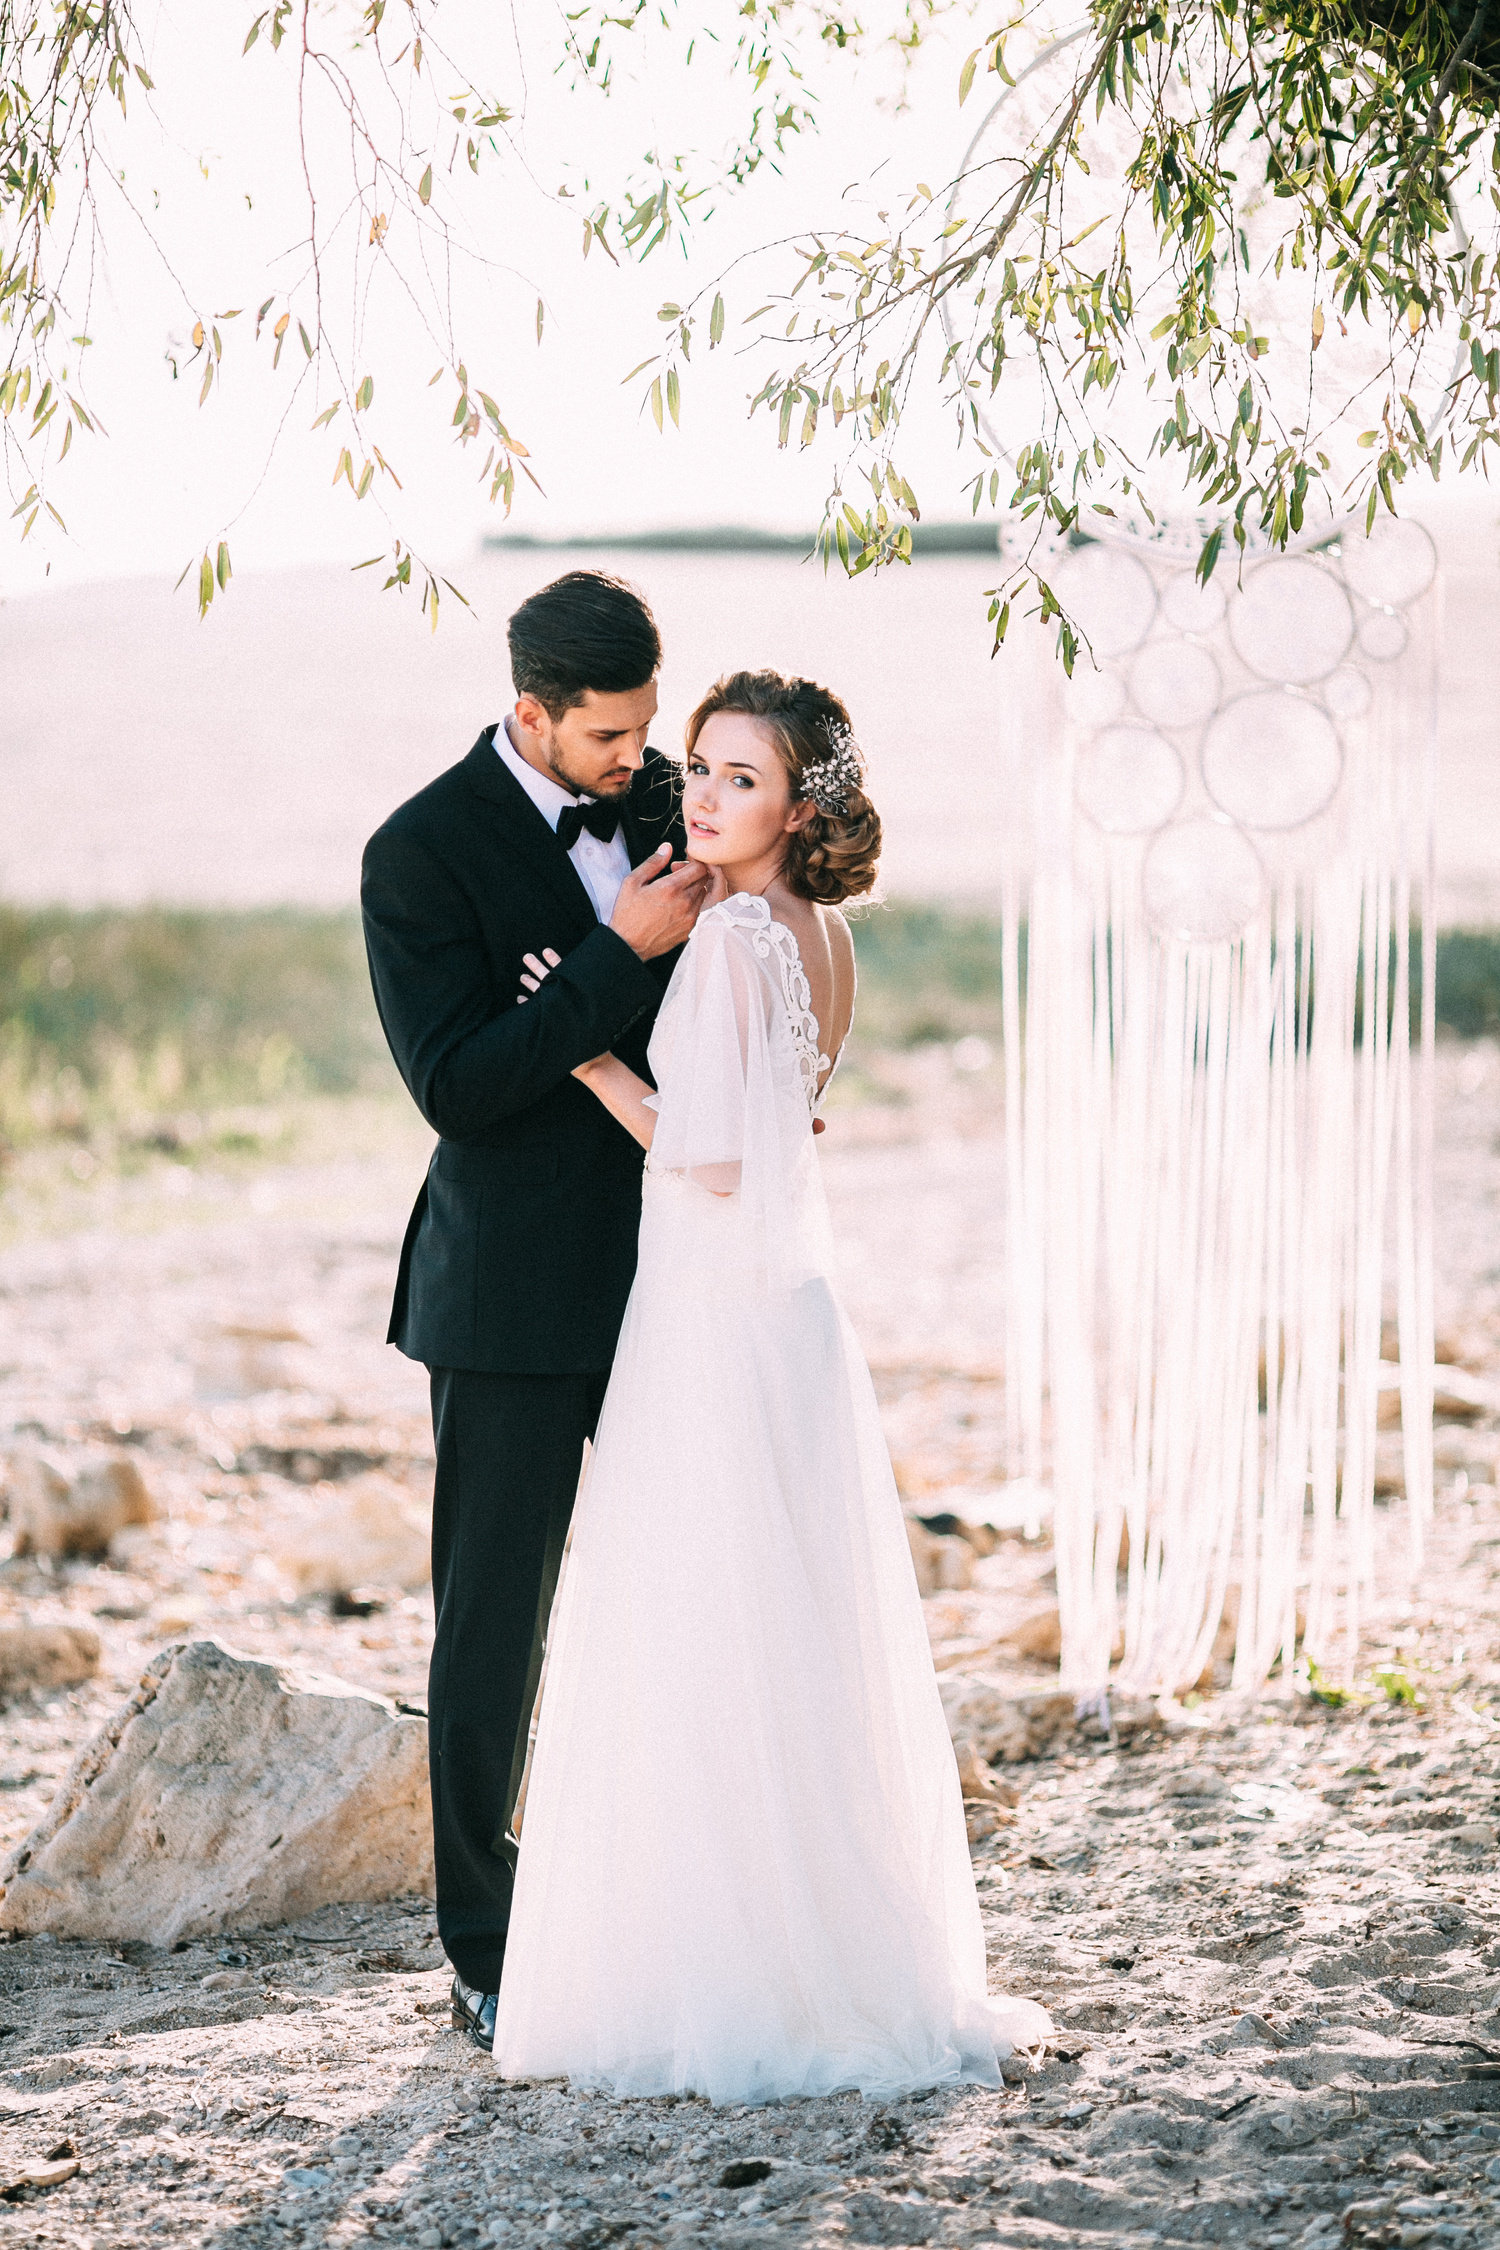 Dreamy Beach Wedding Styled Photo Shoot In Tender